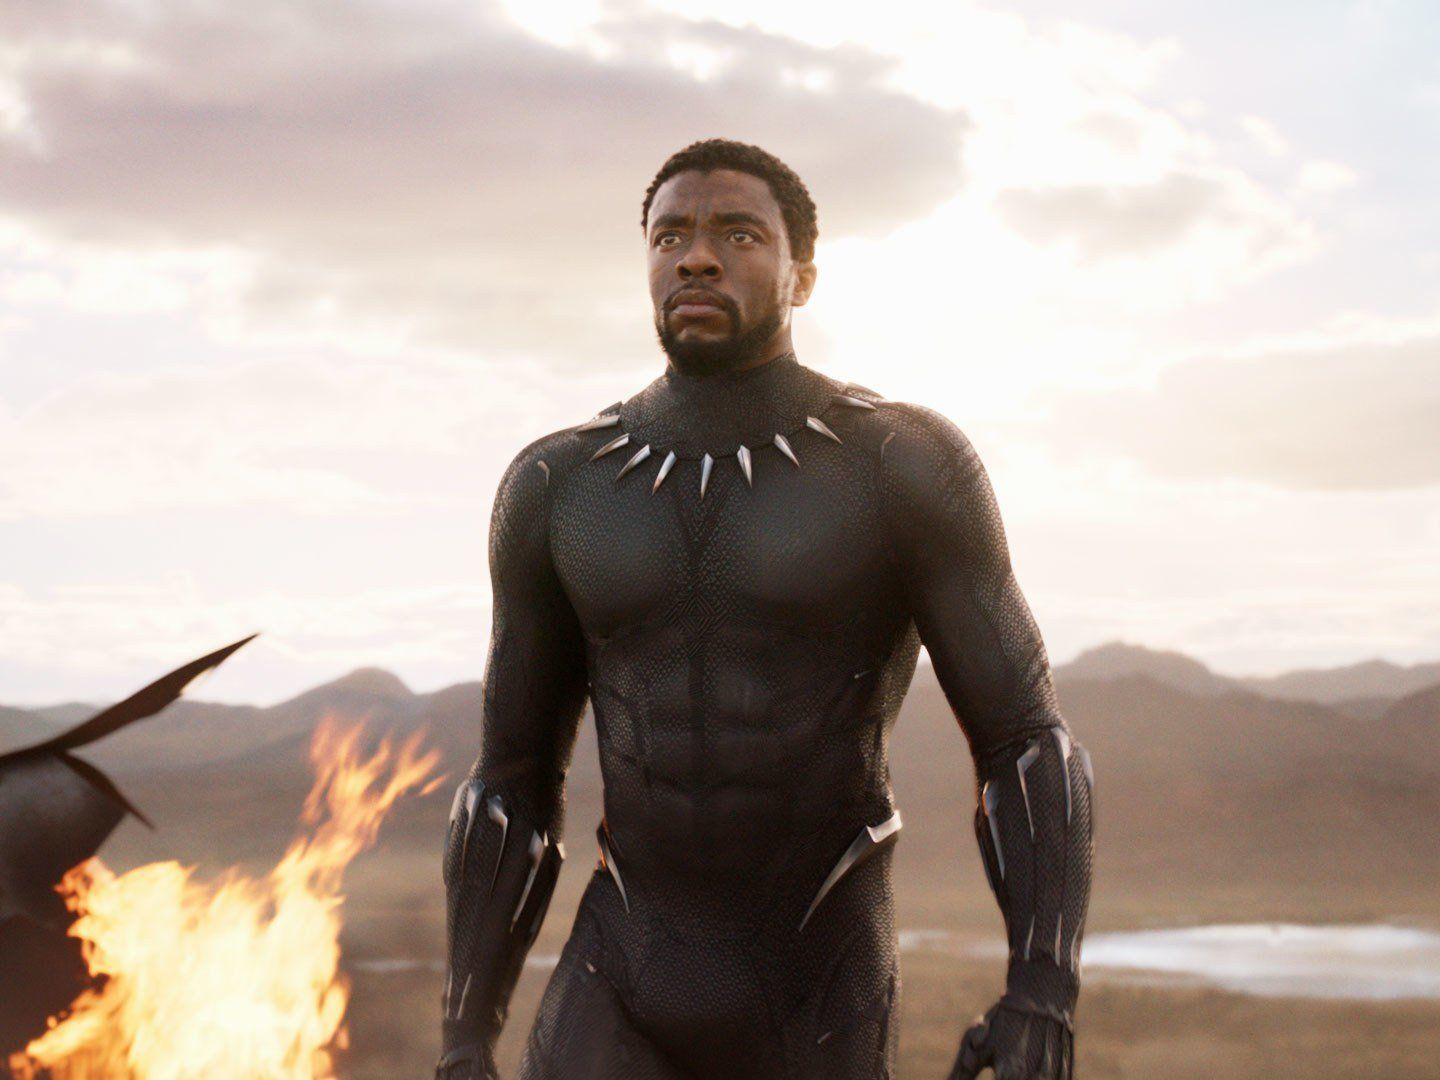 'Black Panther' has broken yet another record